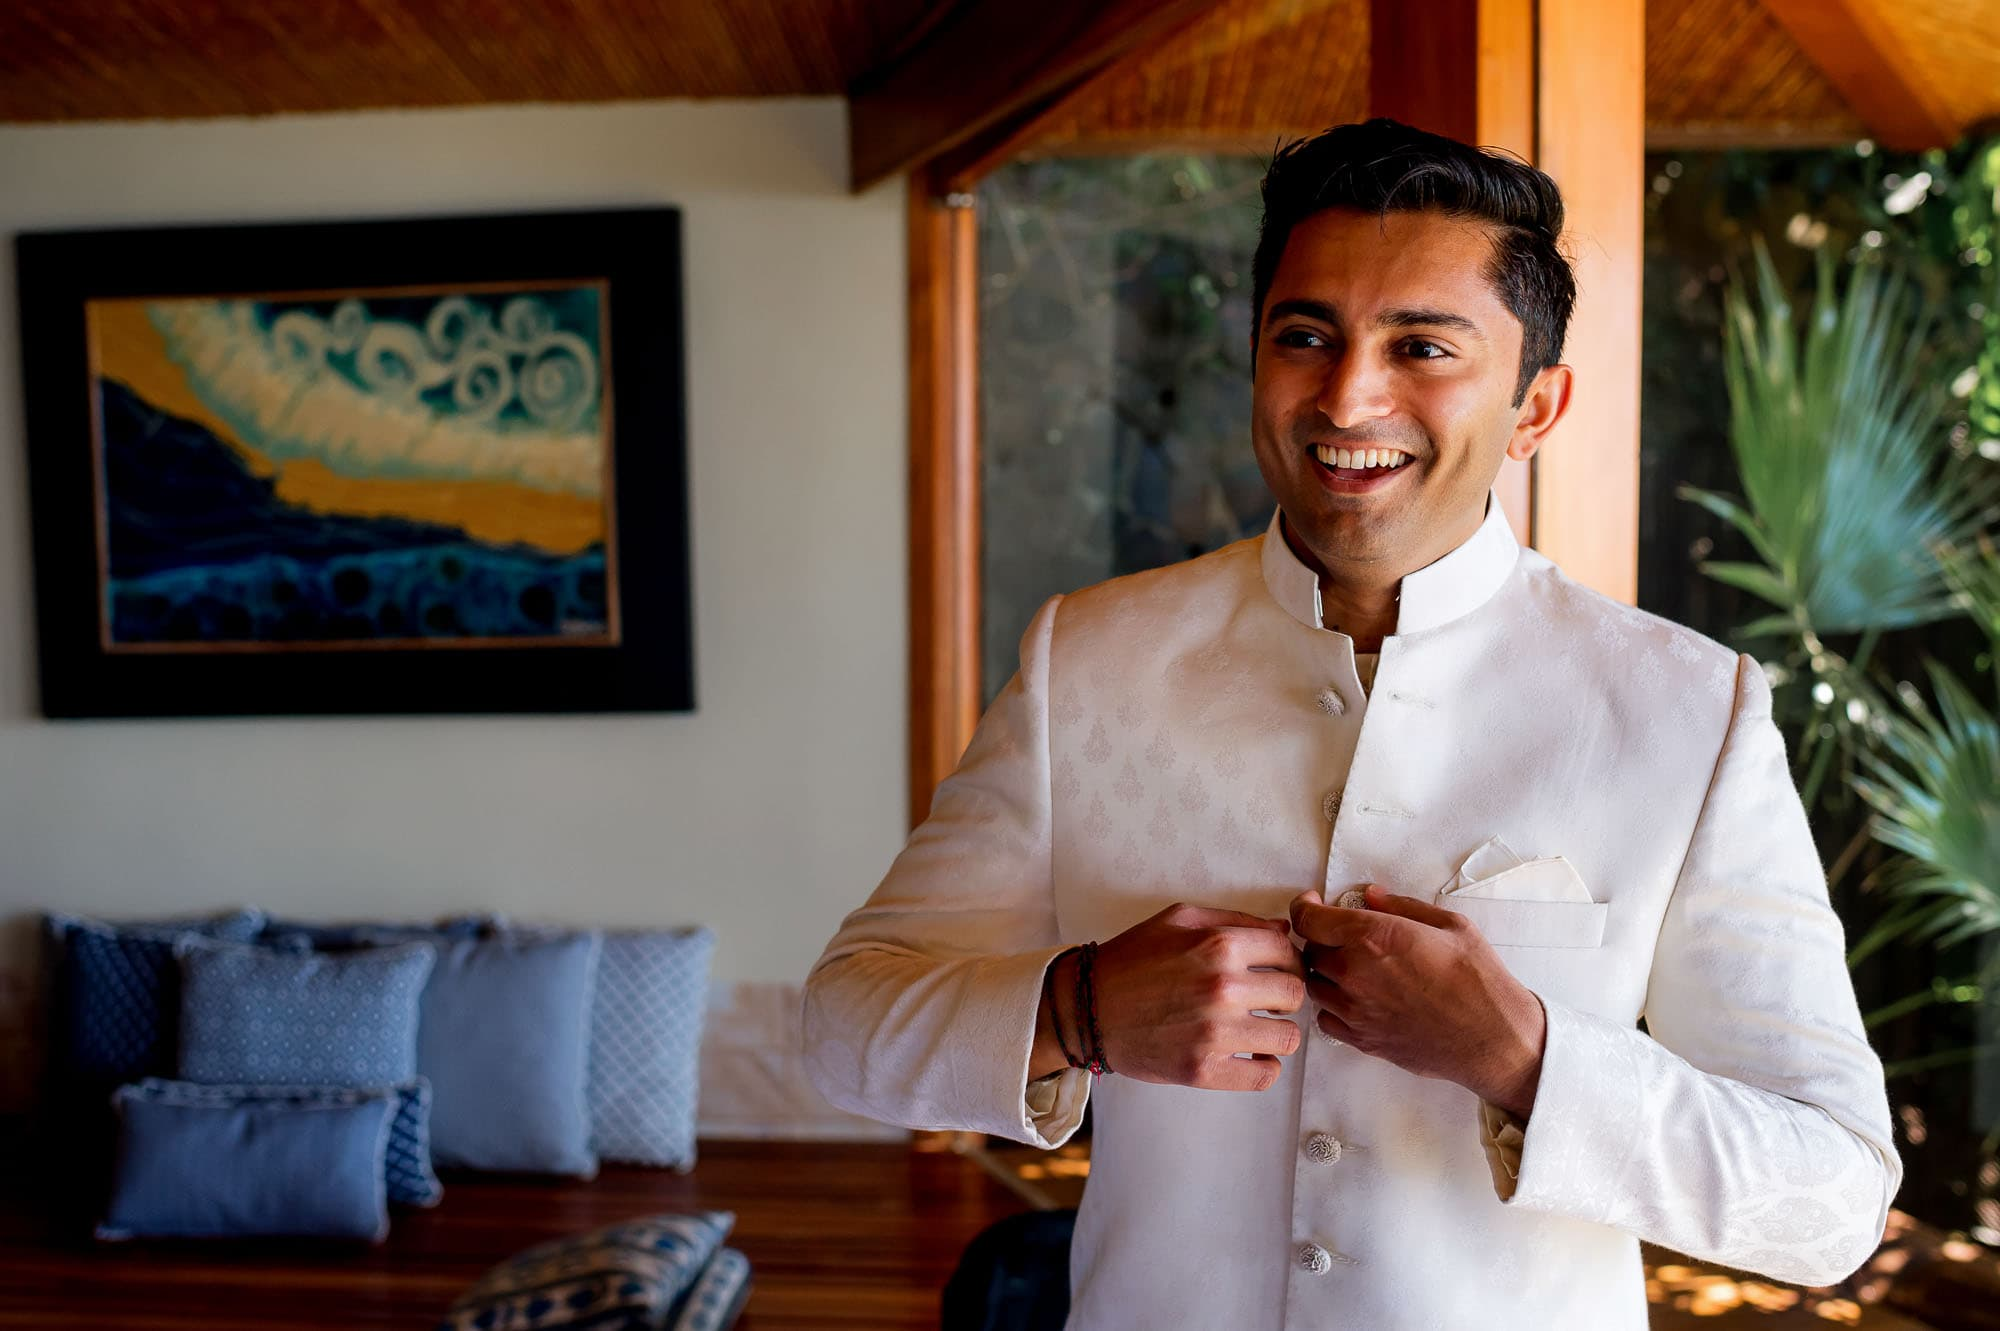 The groom ready for his traditional Hindu Muslim wedding ceremony.